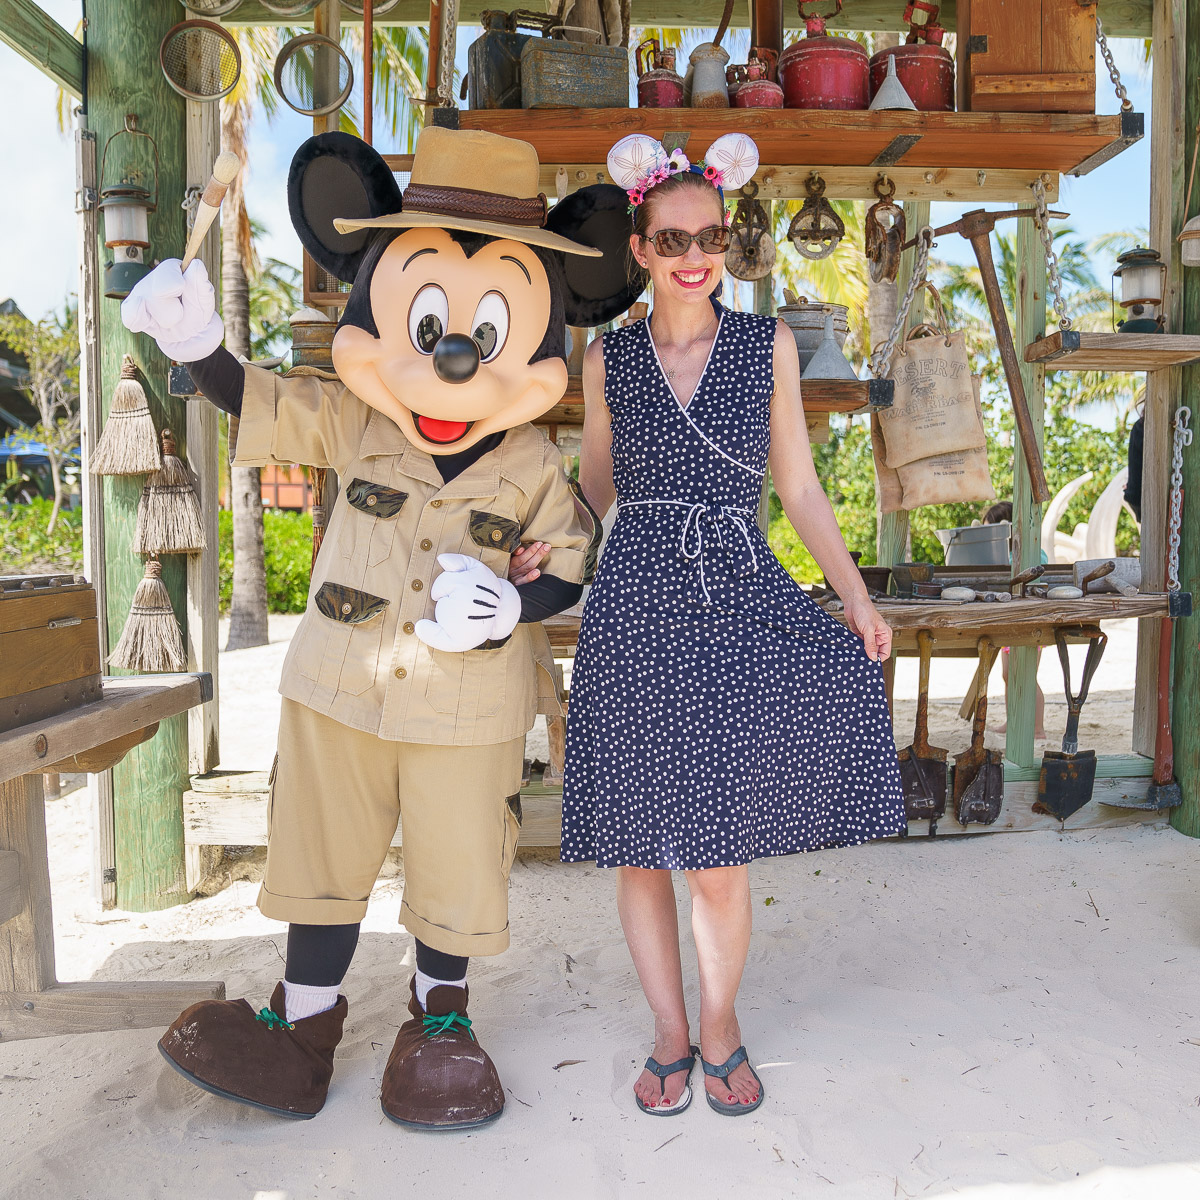 Top 10 Things to Do on Disney Fantasy featured by top US Disney blogger, Marcie and the Mouse: Meeting Mickey Mouse in his archeologist gear at Castaway Cay